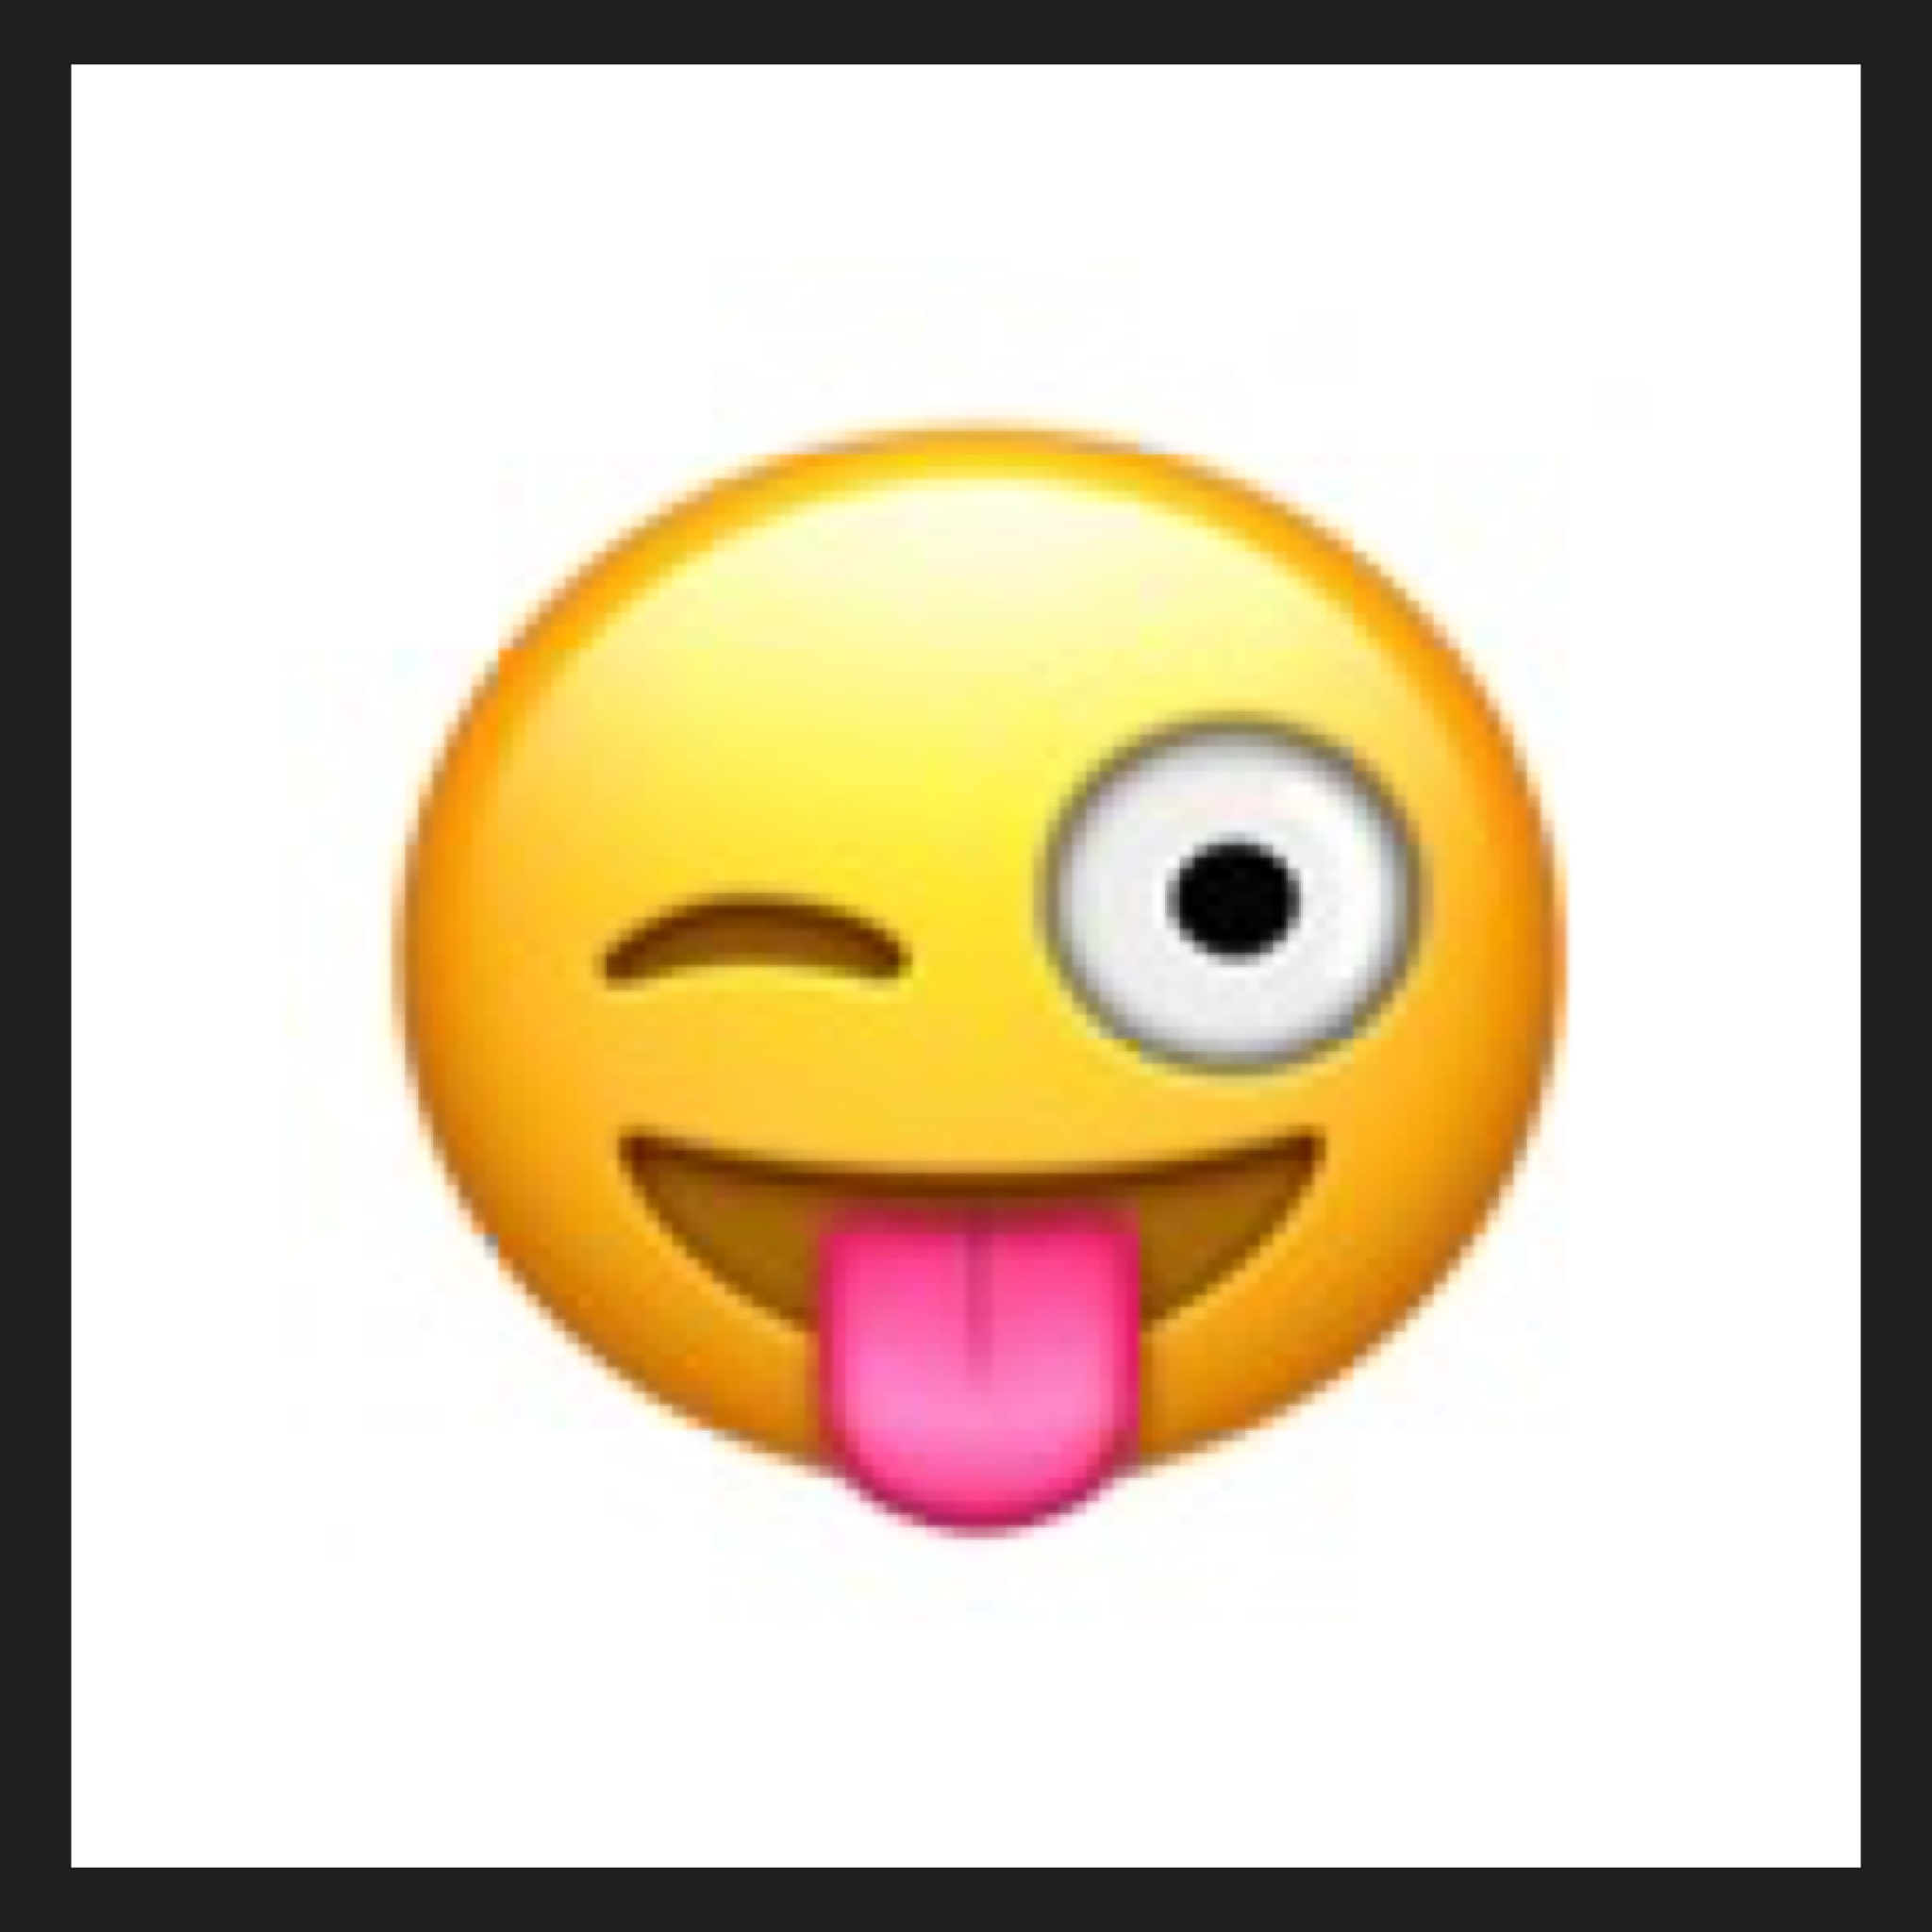 Dirty sex emoji